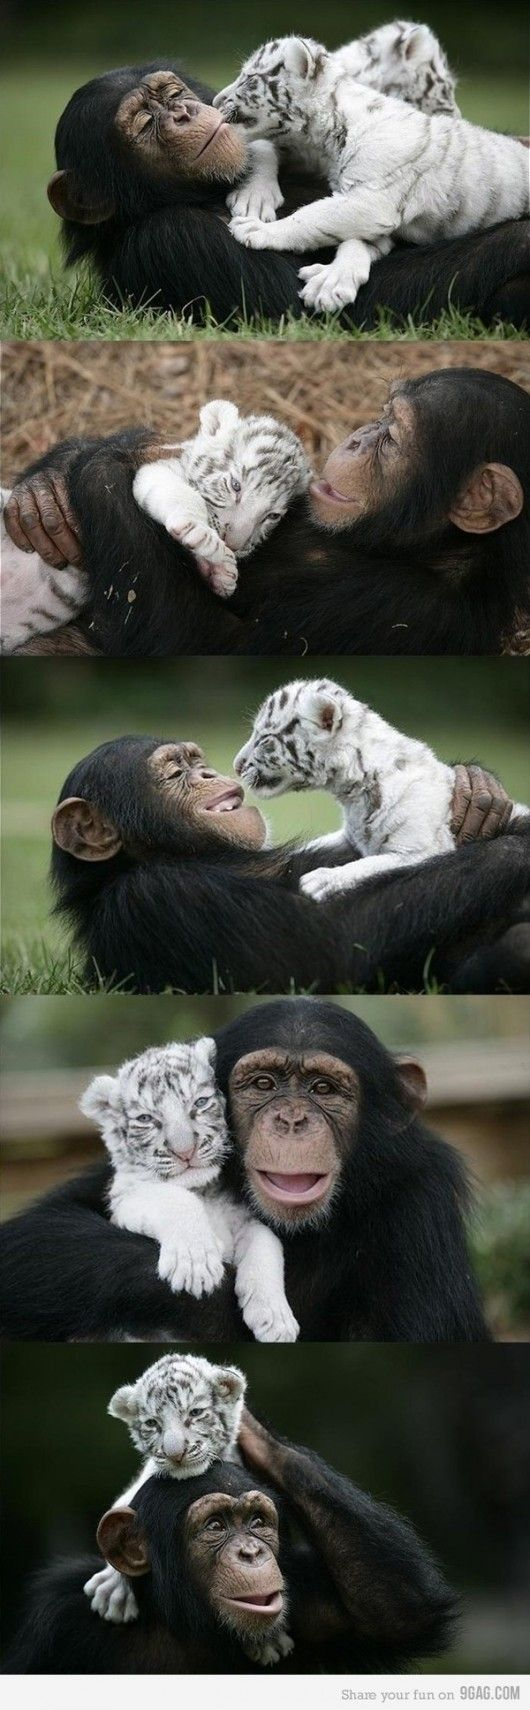 Wow!! This is absolutely adorable!!